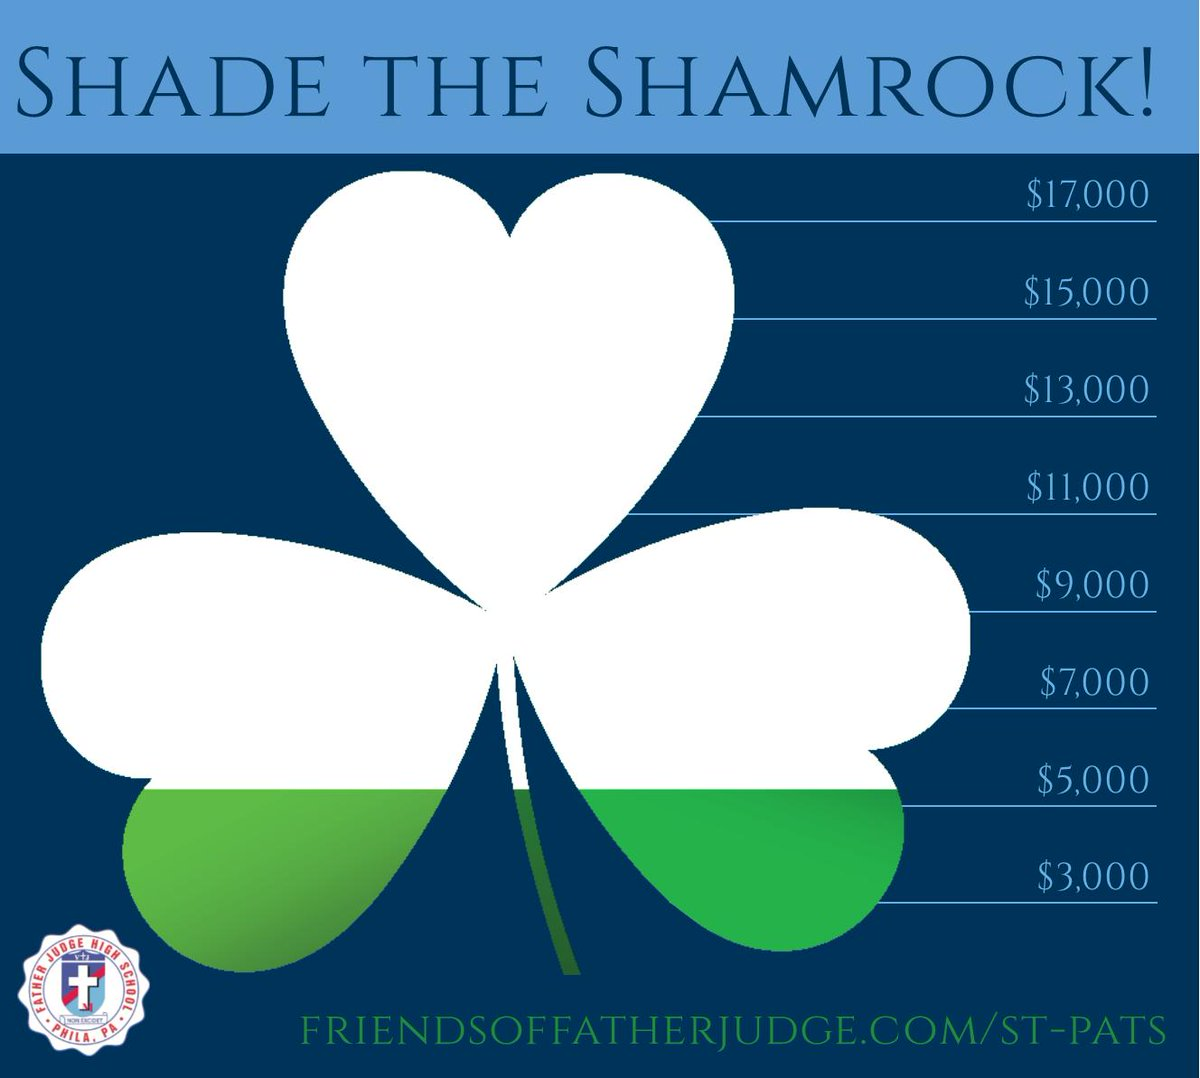 We're seeing GREEN! 👀 60+ alumni and friends have made a #ShadeTheShamrock gift of $27+ and those LUCKY folks will get an FJ shamrock magnet! Make YOUR gift at http://www.friendsoffatherjudge.com/st-pats. ☘️